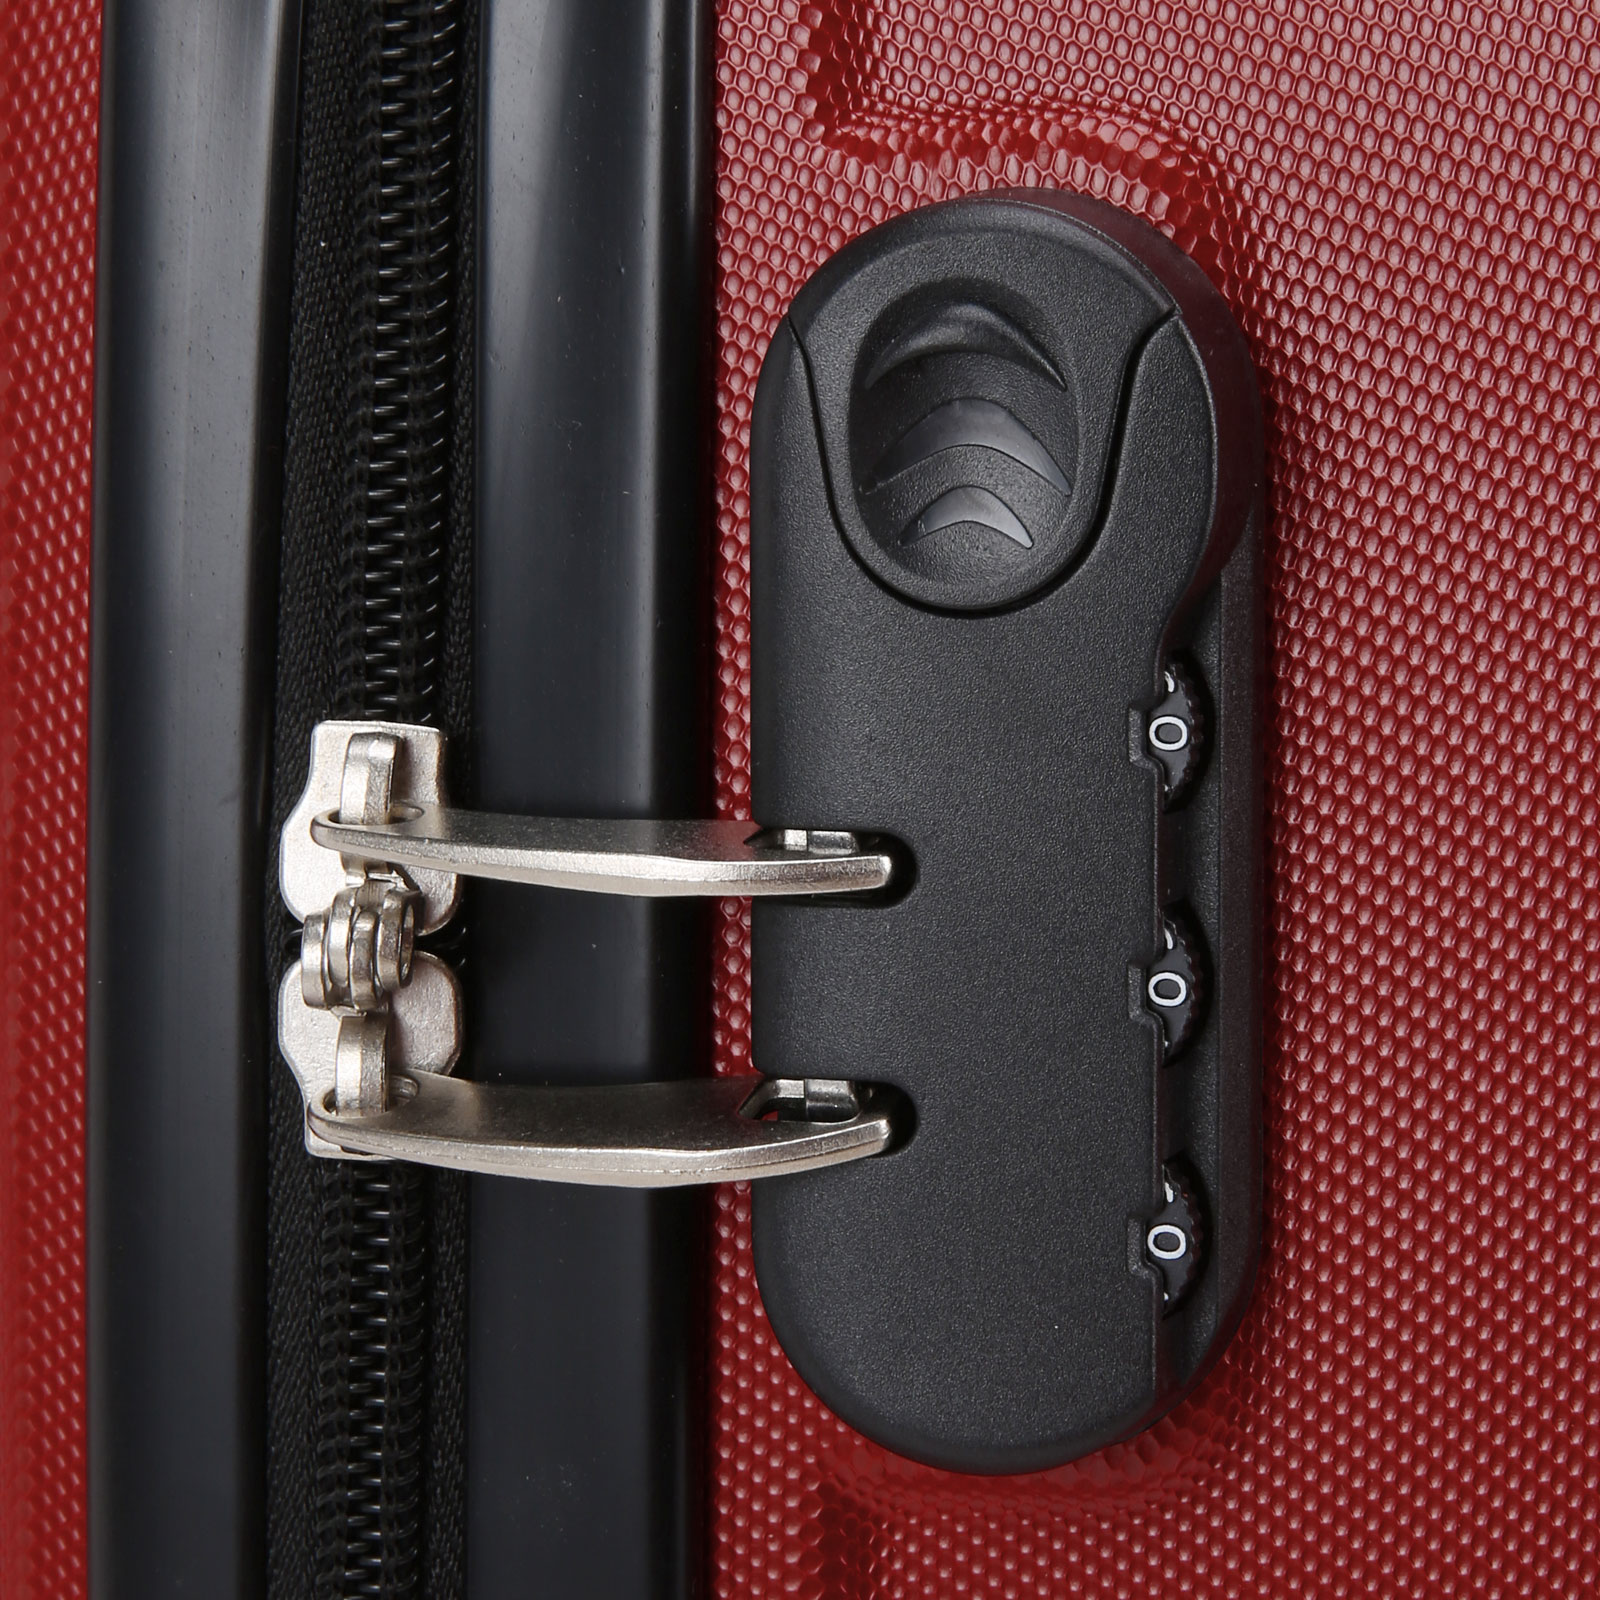 3 Valise Trolley Roulettes Bagage Rigide Voyage Rouge 20